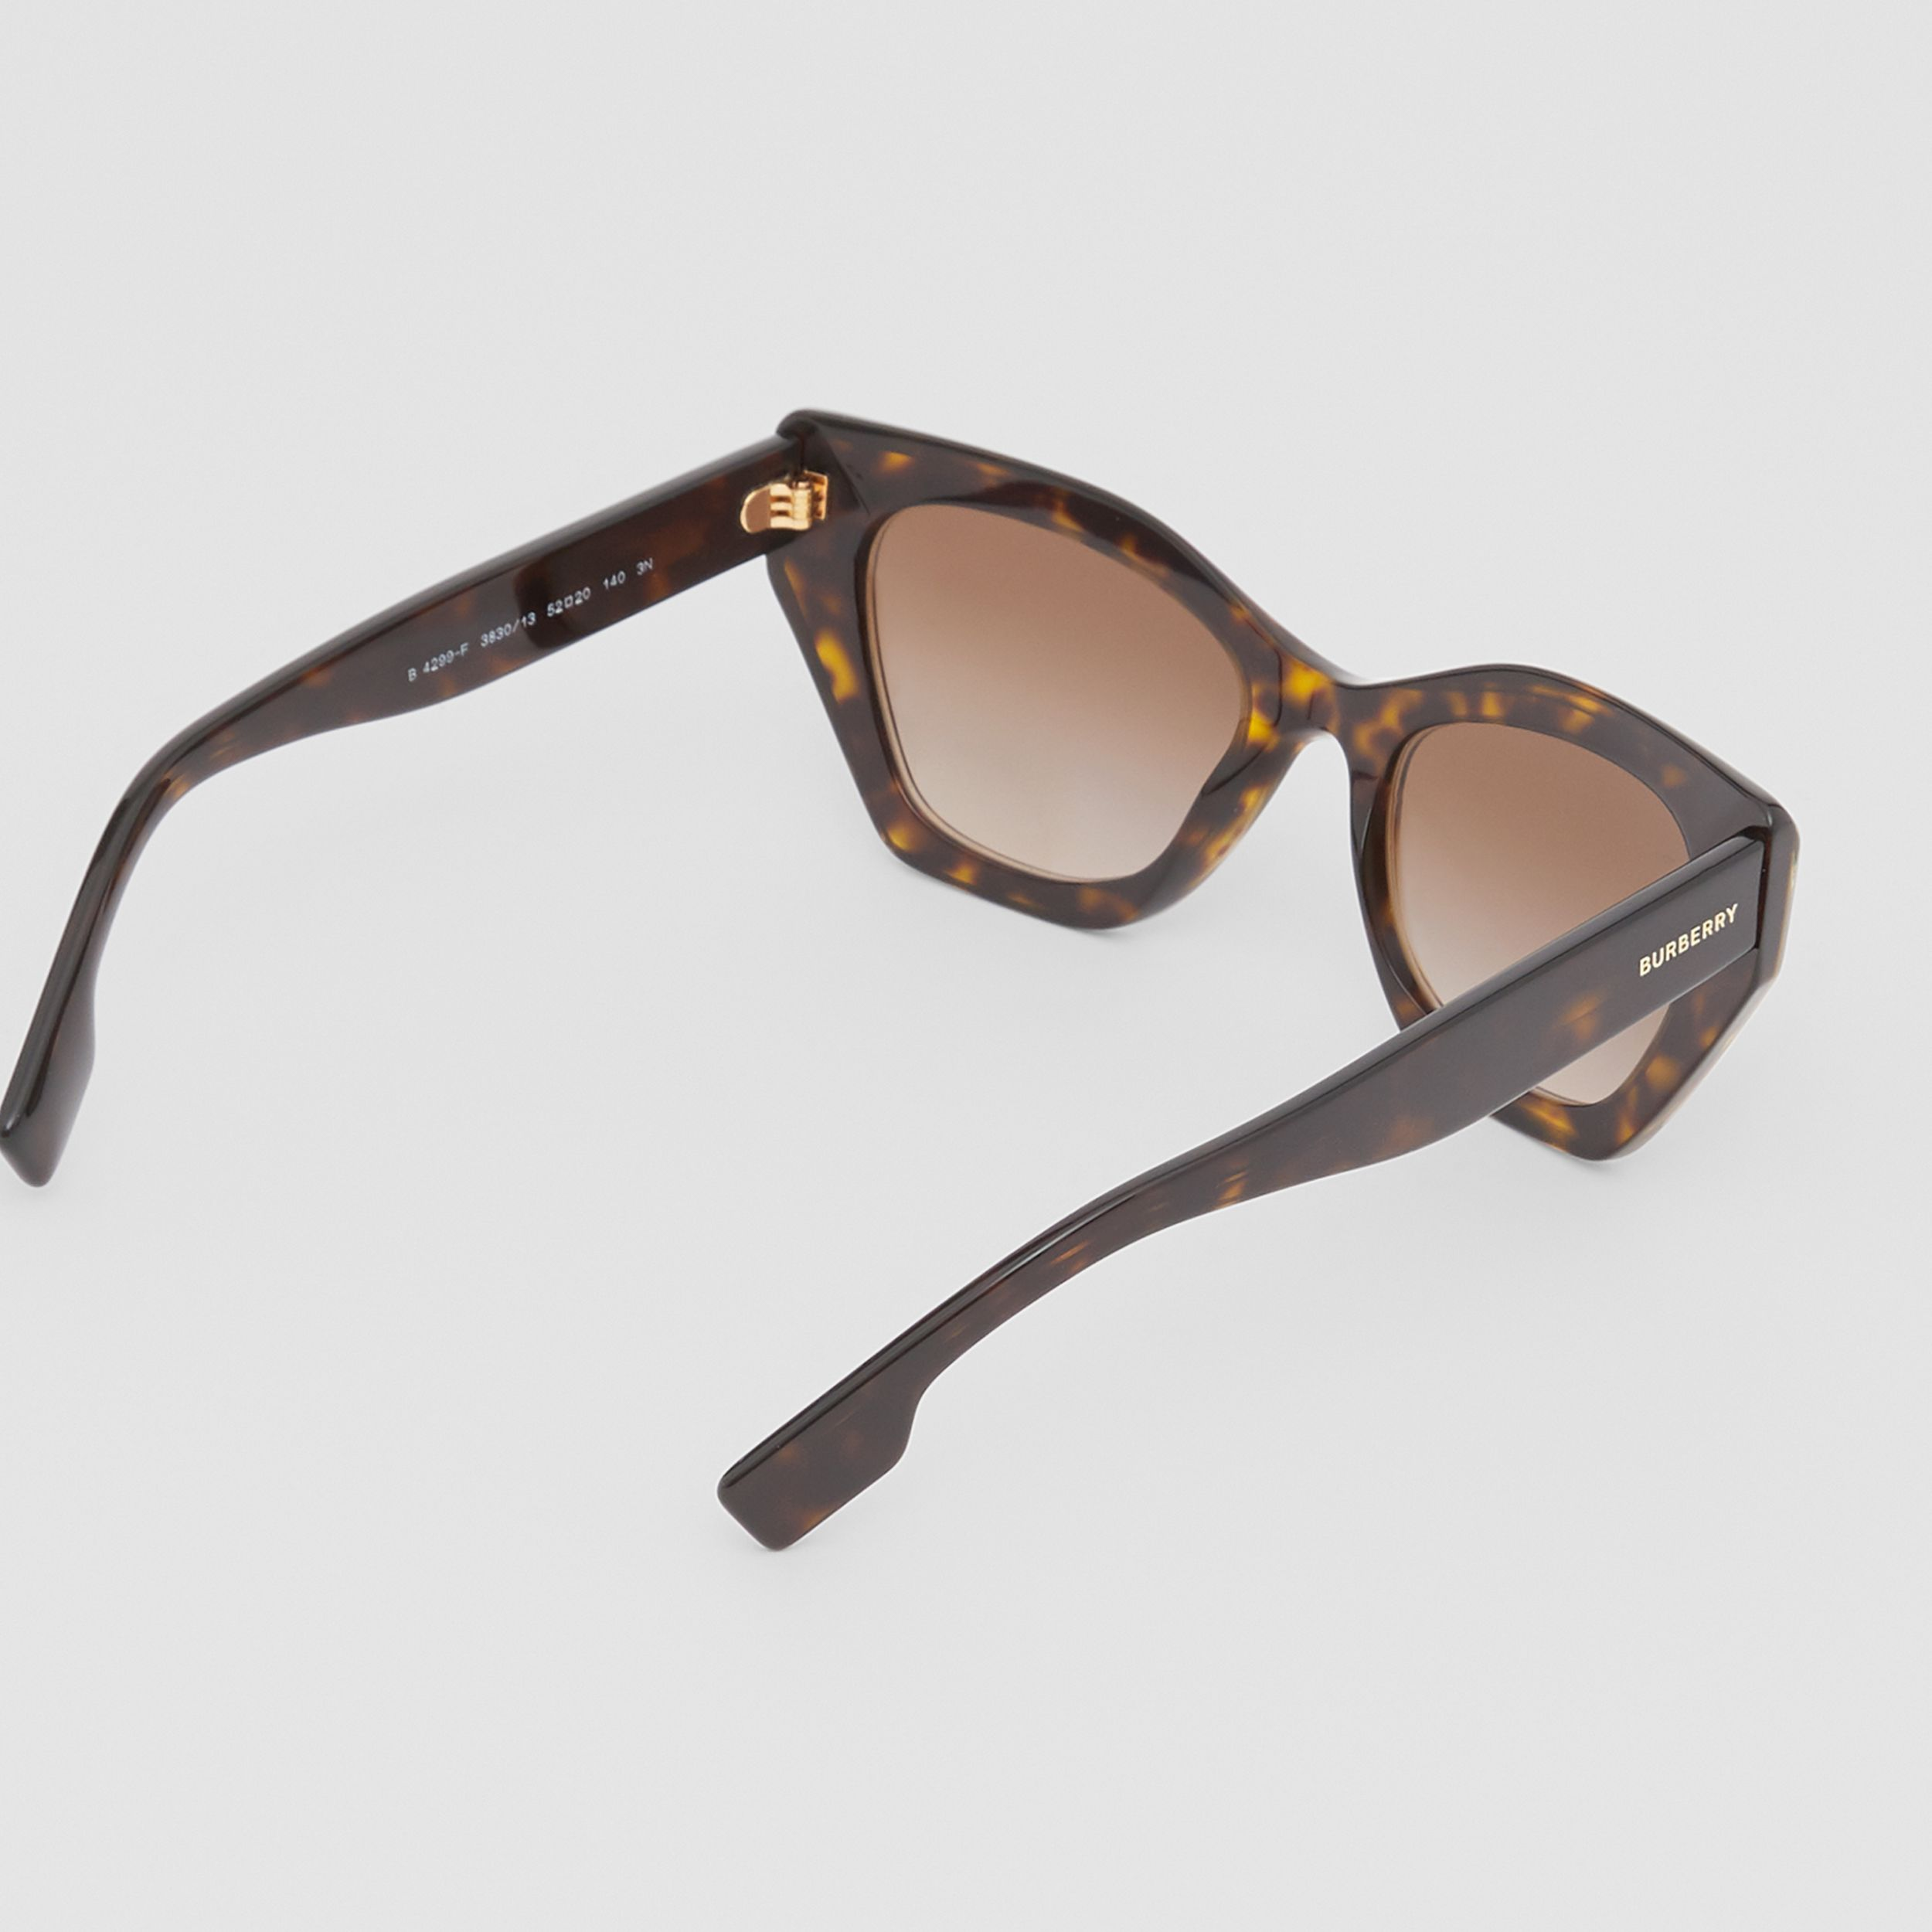 Butterfly Frame Sunglasses in Tortoiseshell - Women | Burberry - 4